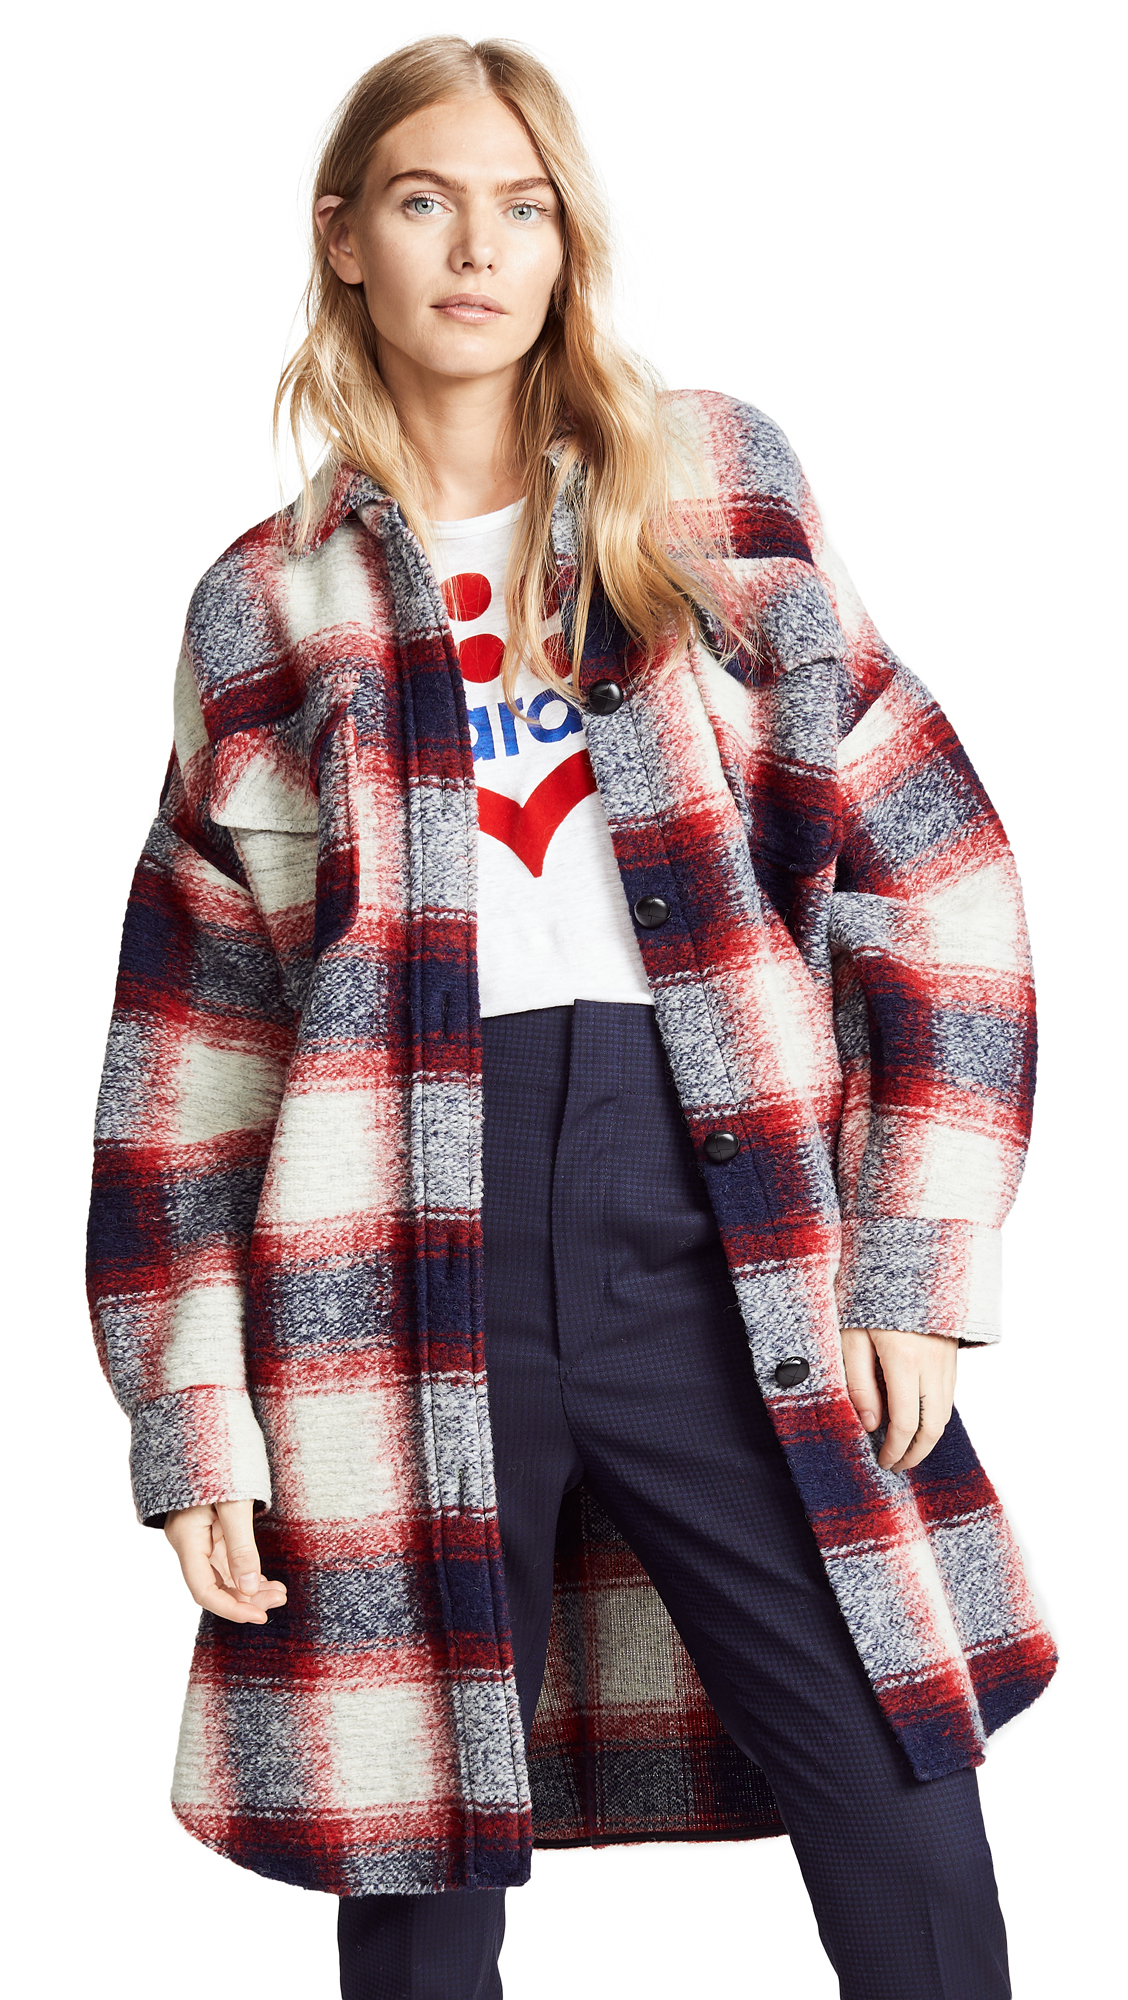 Isabel Marant Etoile Gario Coat In Red/Midnight